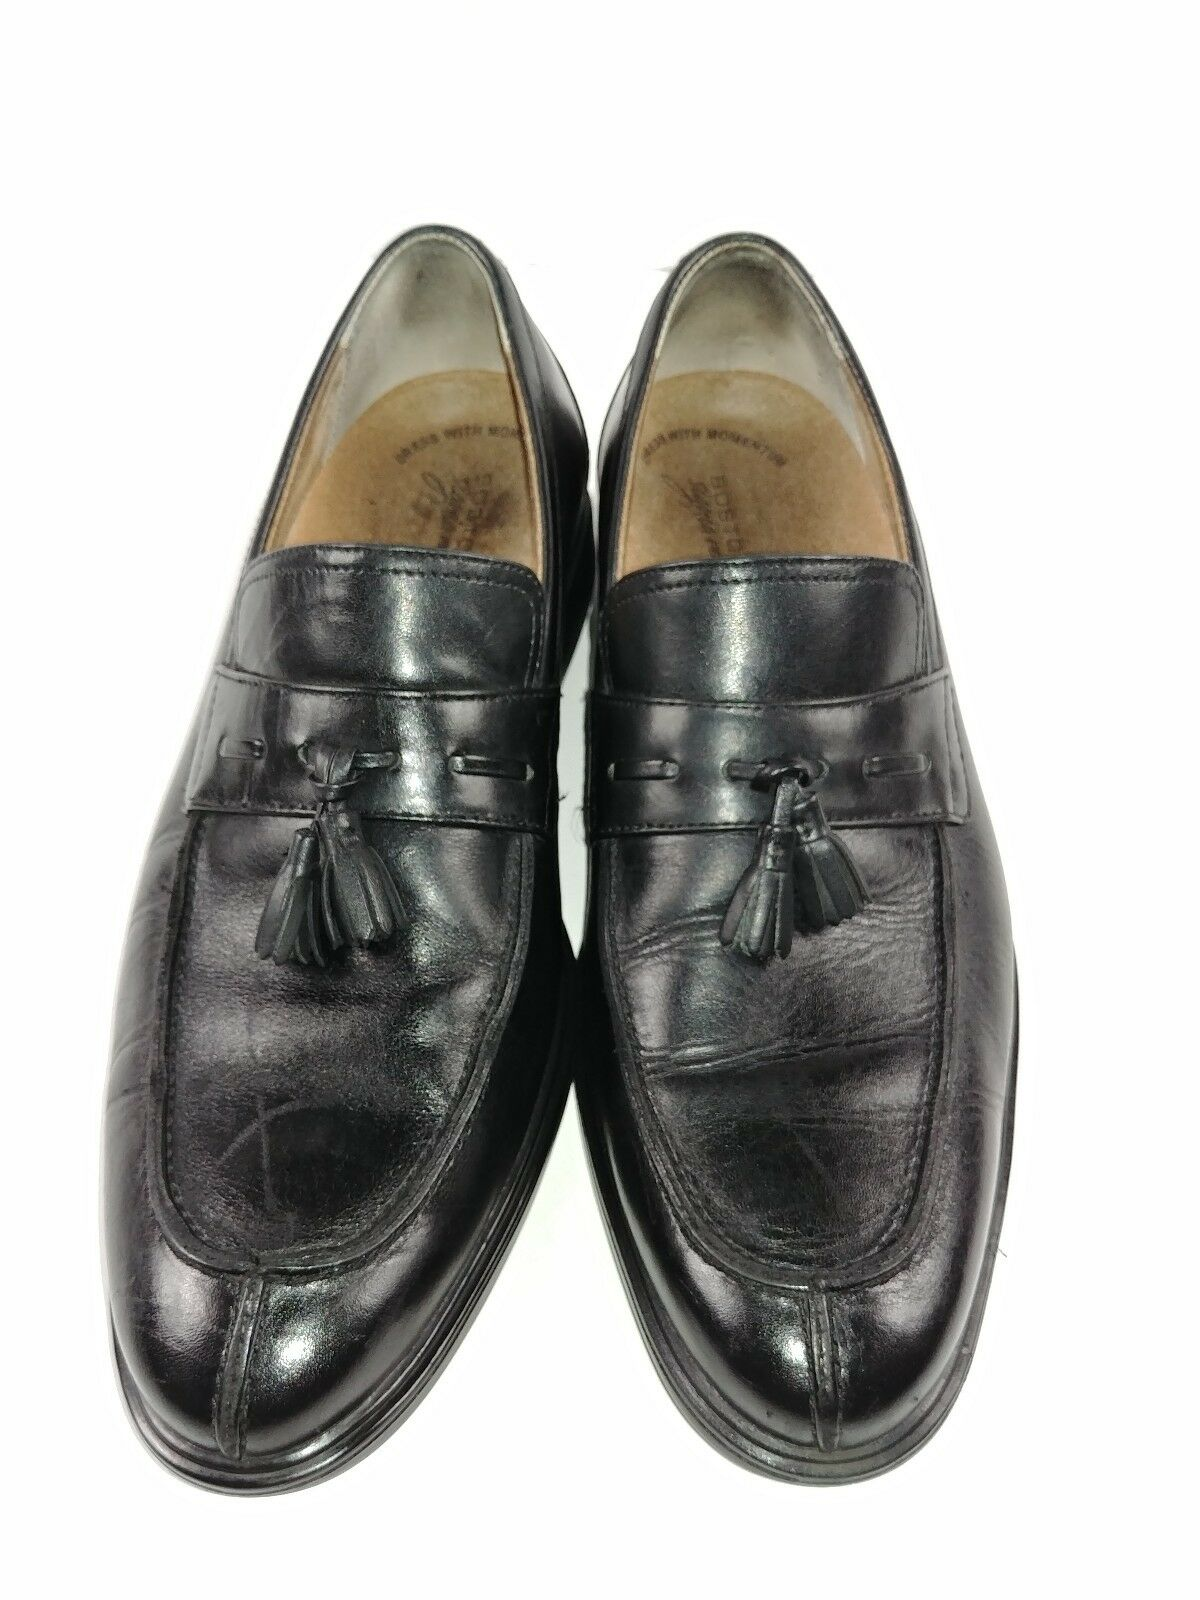 Bostonian Signia Advance Loafers Leather Size 10M Oxfords Black Leather Loafers Casual Shoes 1f4928